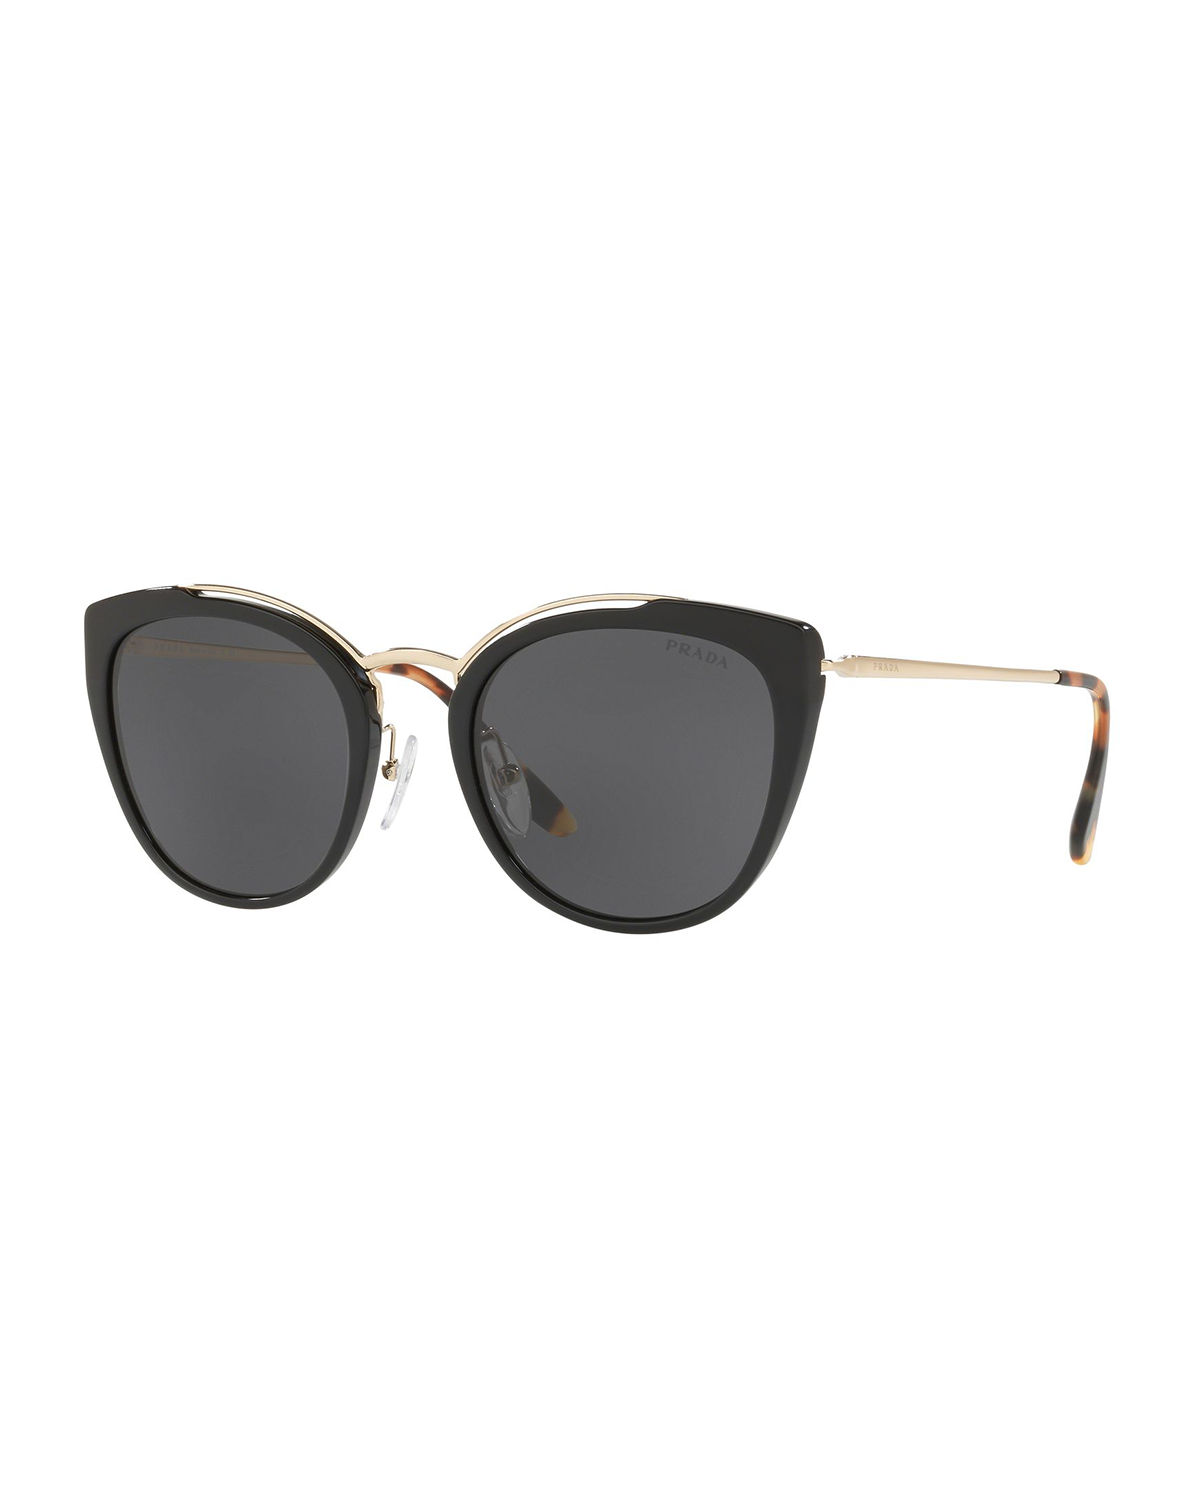 a29fca07484 Prada Acetate   Metal Mirrored Cat-Eye Sunglasses